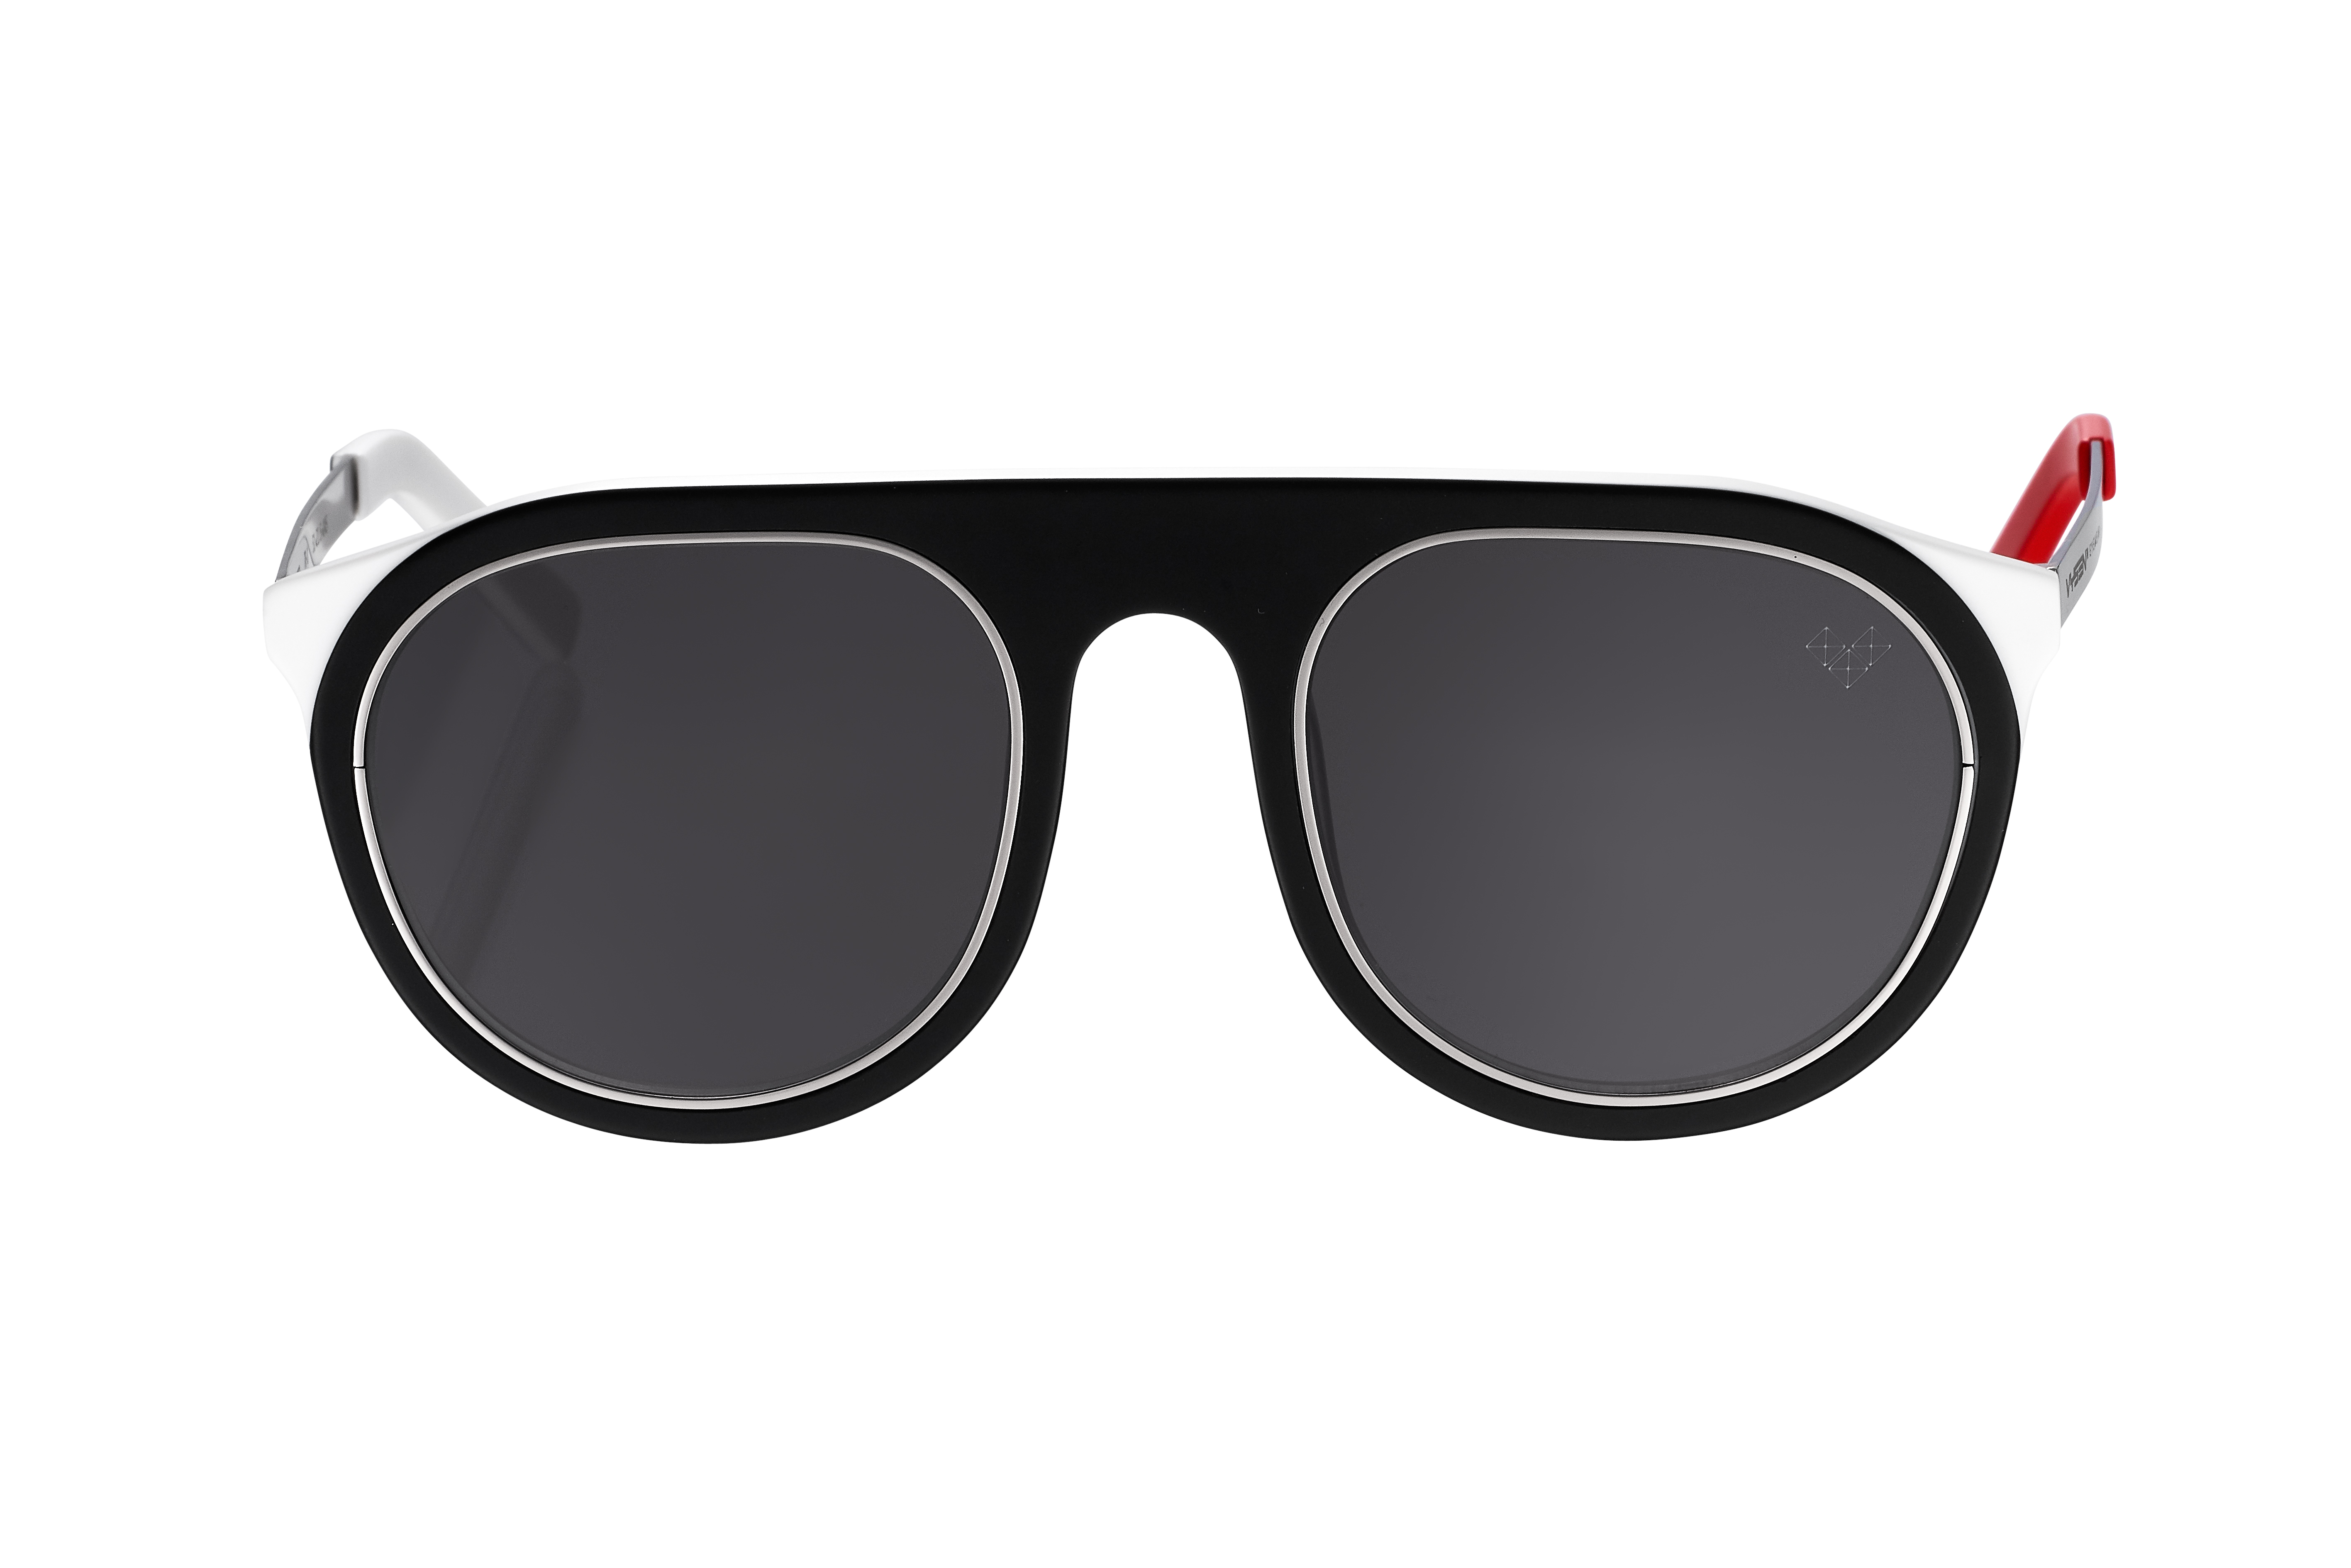 TROY-Tr-1 With Black Lenses